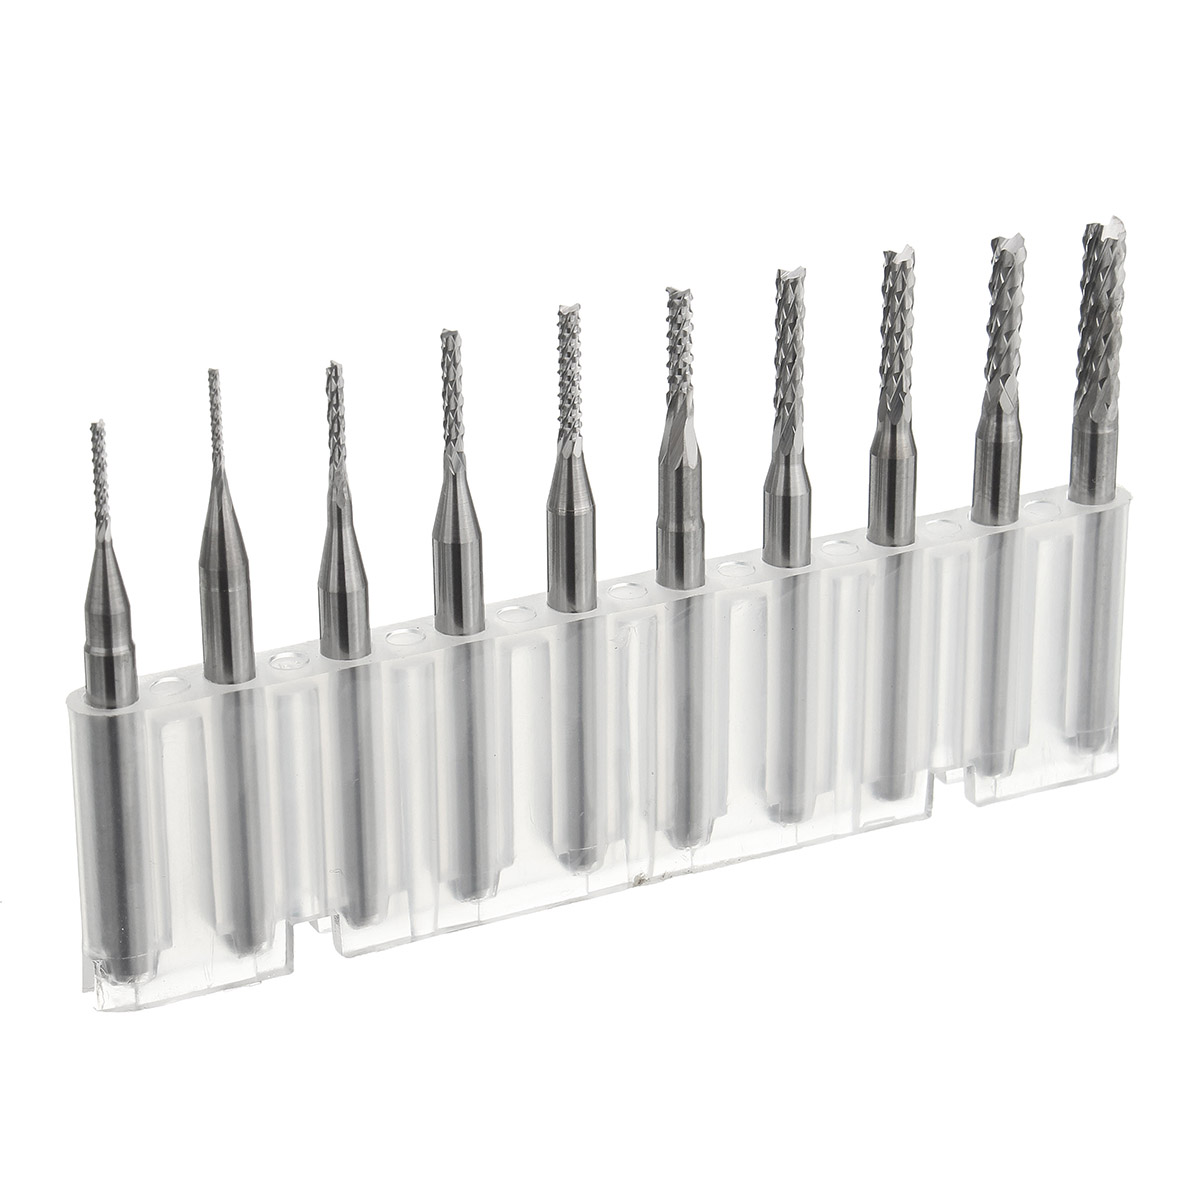 10Pcs/Box 1/8 Inch 0.8/1.0/1.2/1.4/1.6/1.8/2.0/2.2/2.4/3.17mm PCB Engraving Cutter Rotary CNC End Mill Milling Cuter Drill Bits 10pcs box 1 8 inch 0 8 3 17mm pcb engraving cutter rotary cnc end mill 0 8 1 0 1 2 1 4 1 6 1 8 2 0 2 2 2 4 3 17mm